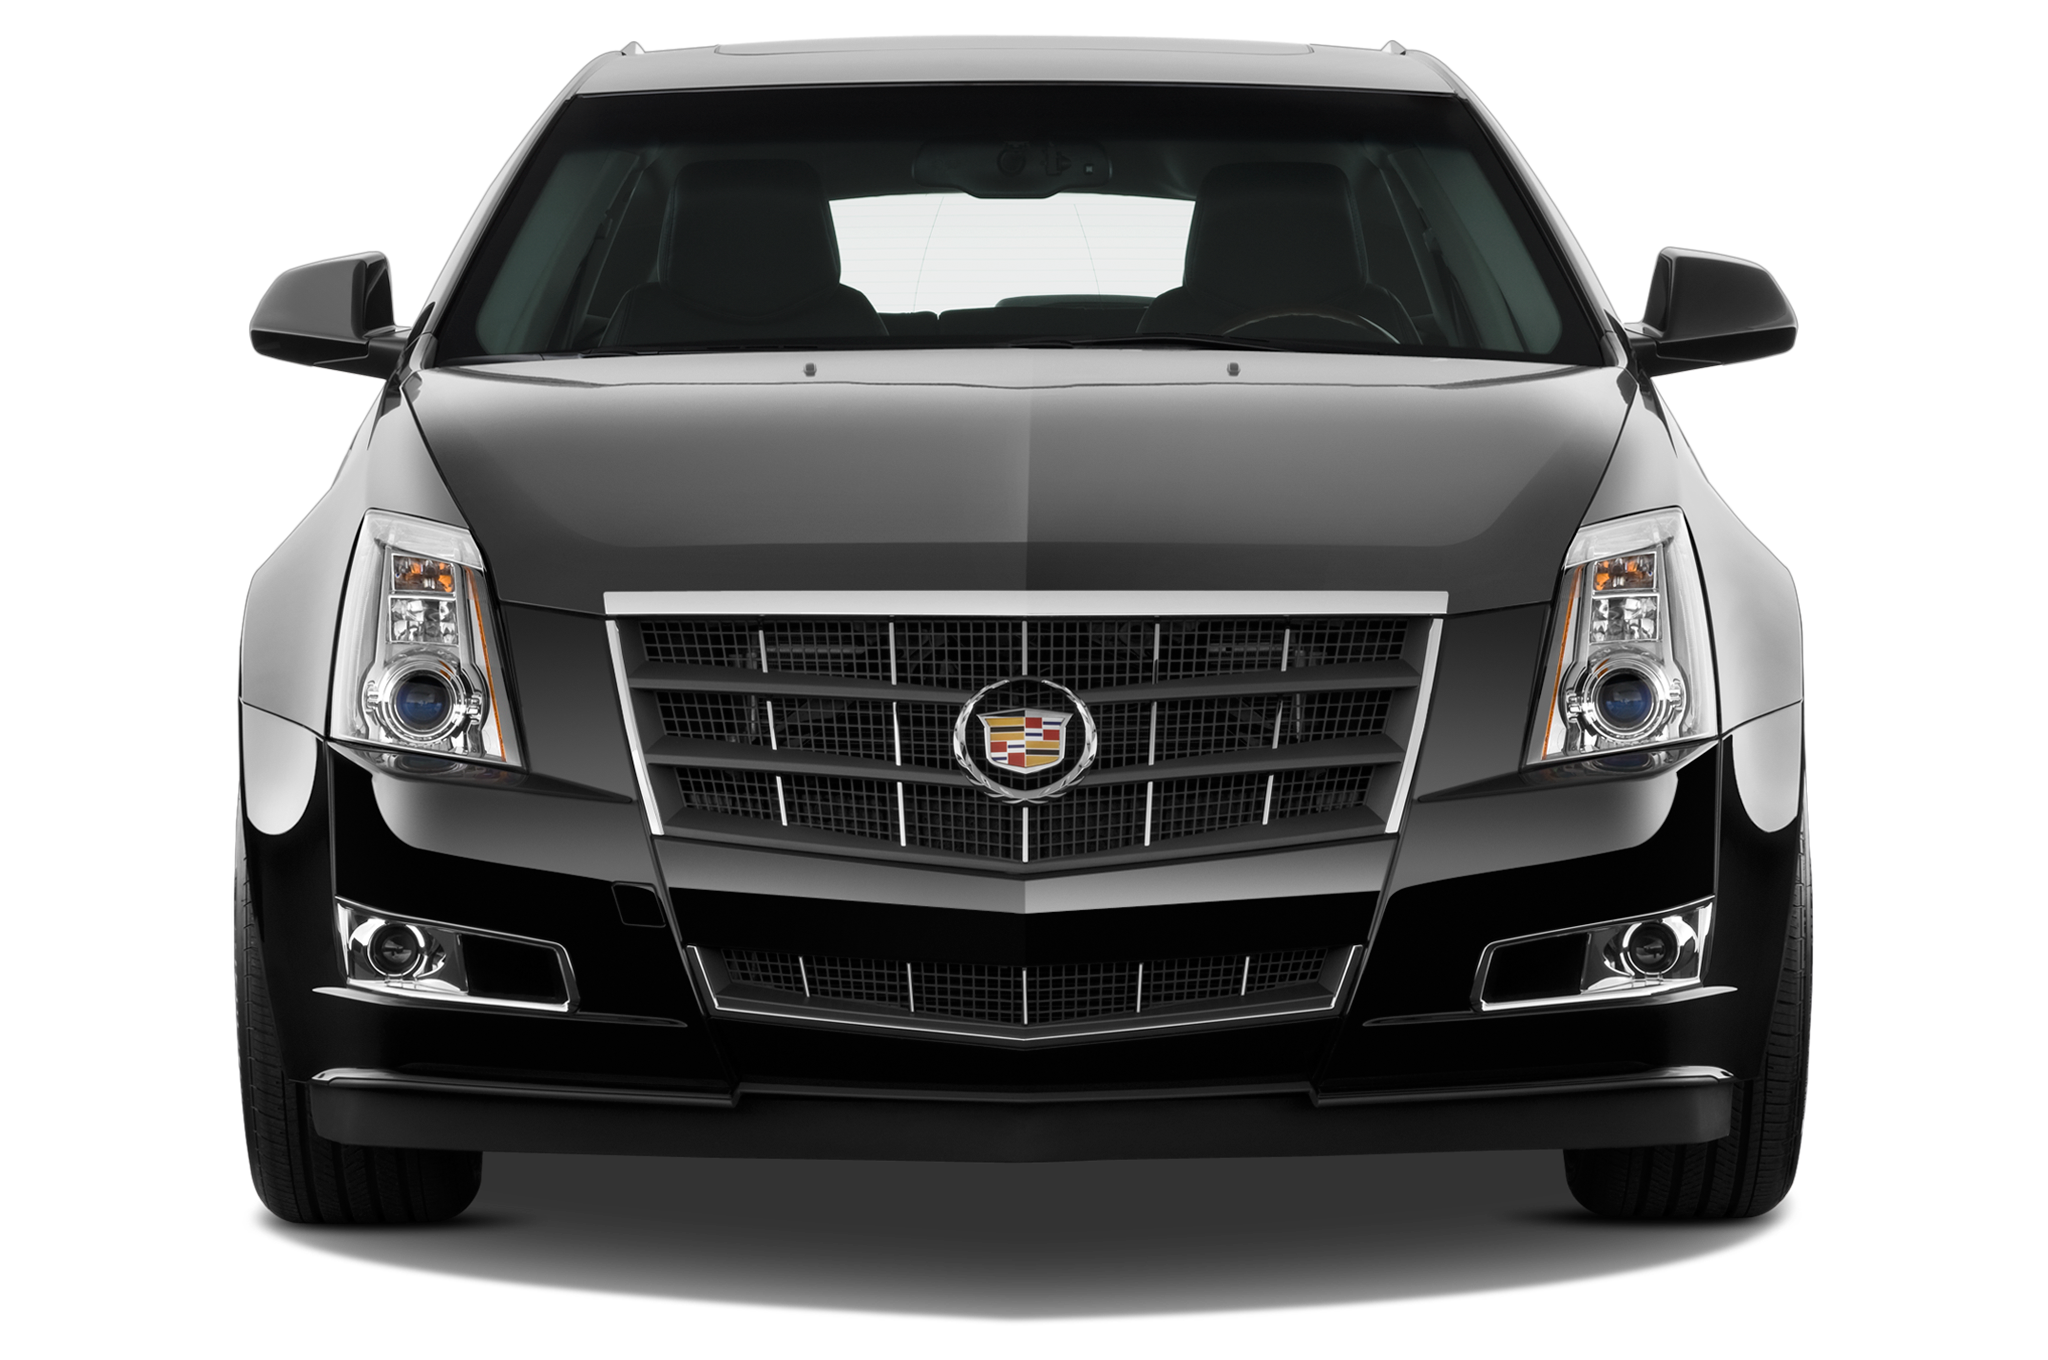 2010 cadillac cts sport wagon cadillac cts wagon automobile magazine. Black Bedroom Furniture Sets. Home Design Ideas